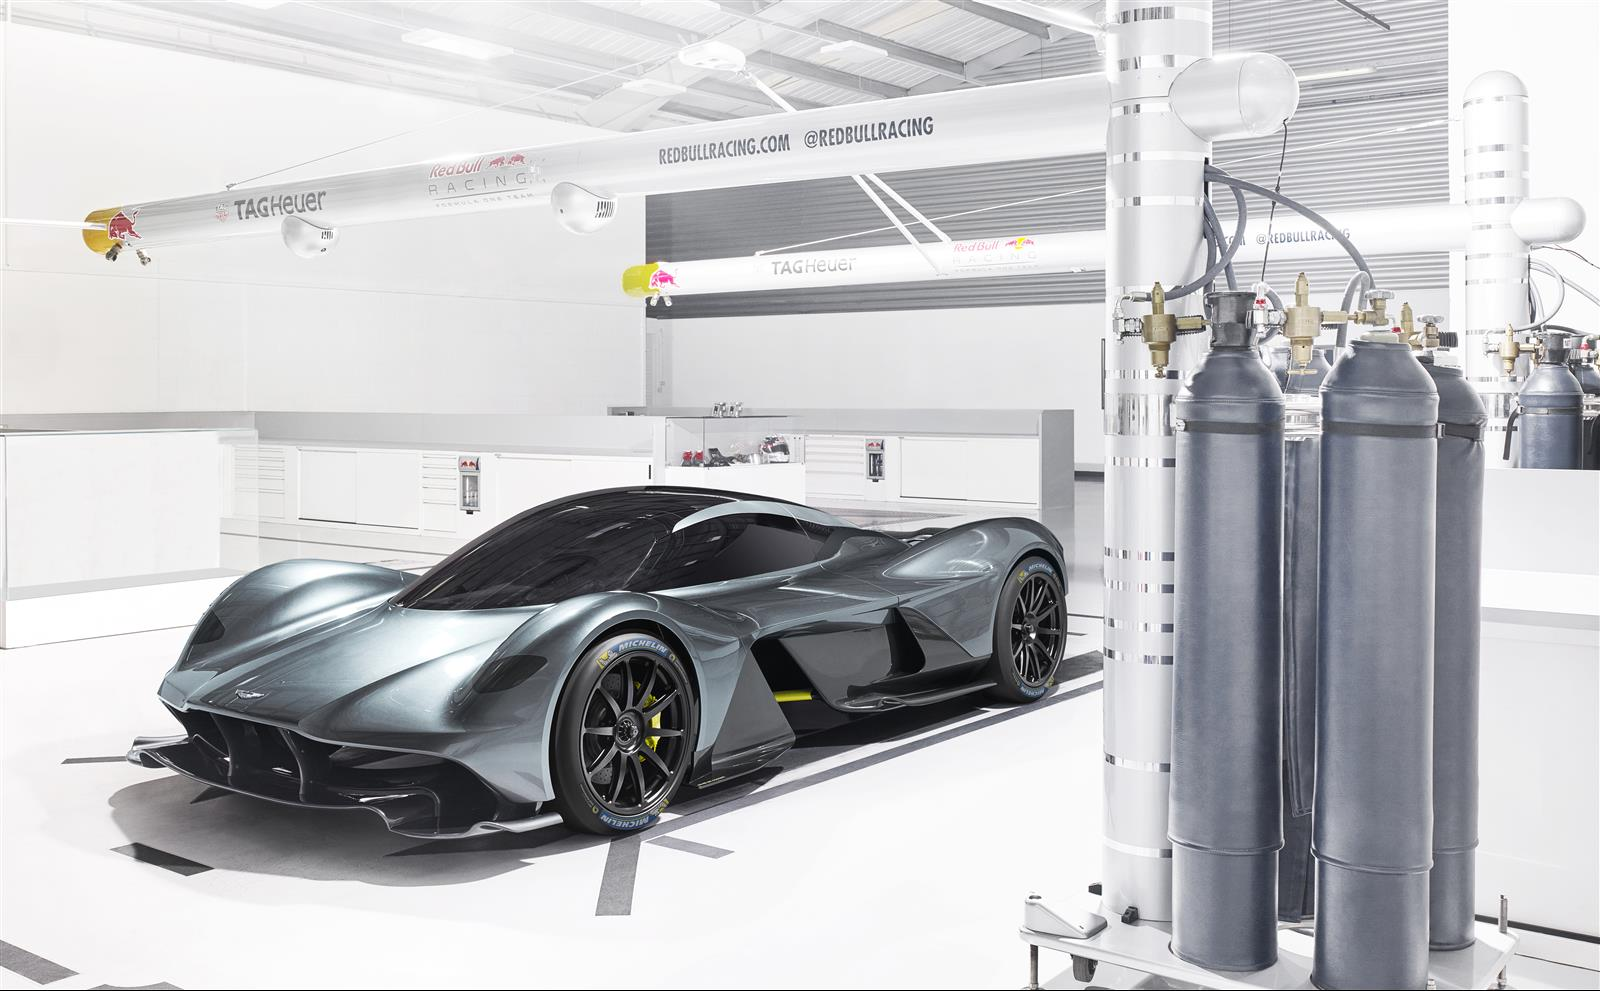 aston-martin-valkyrie_michelin_02_resized